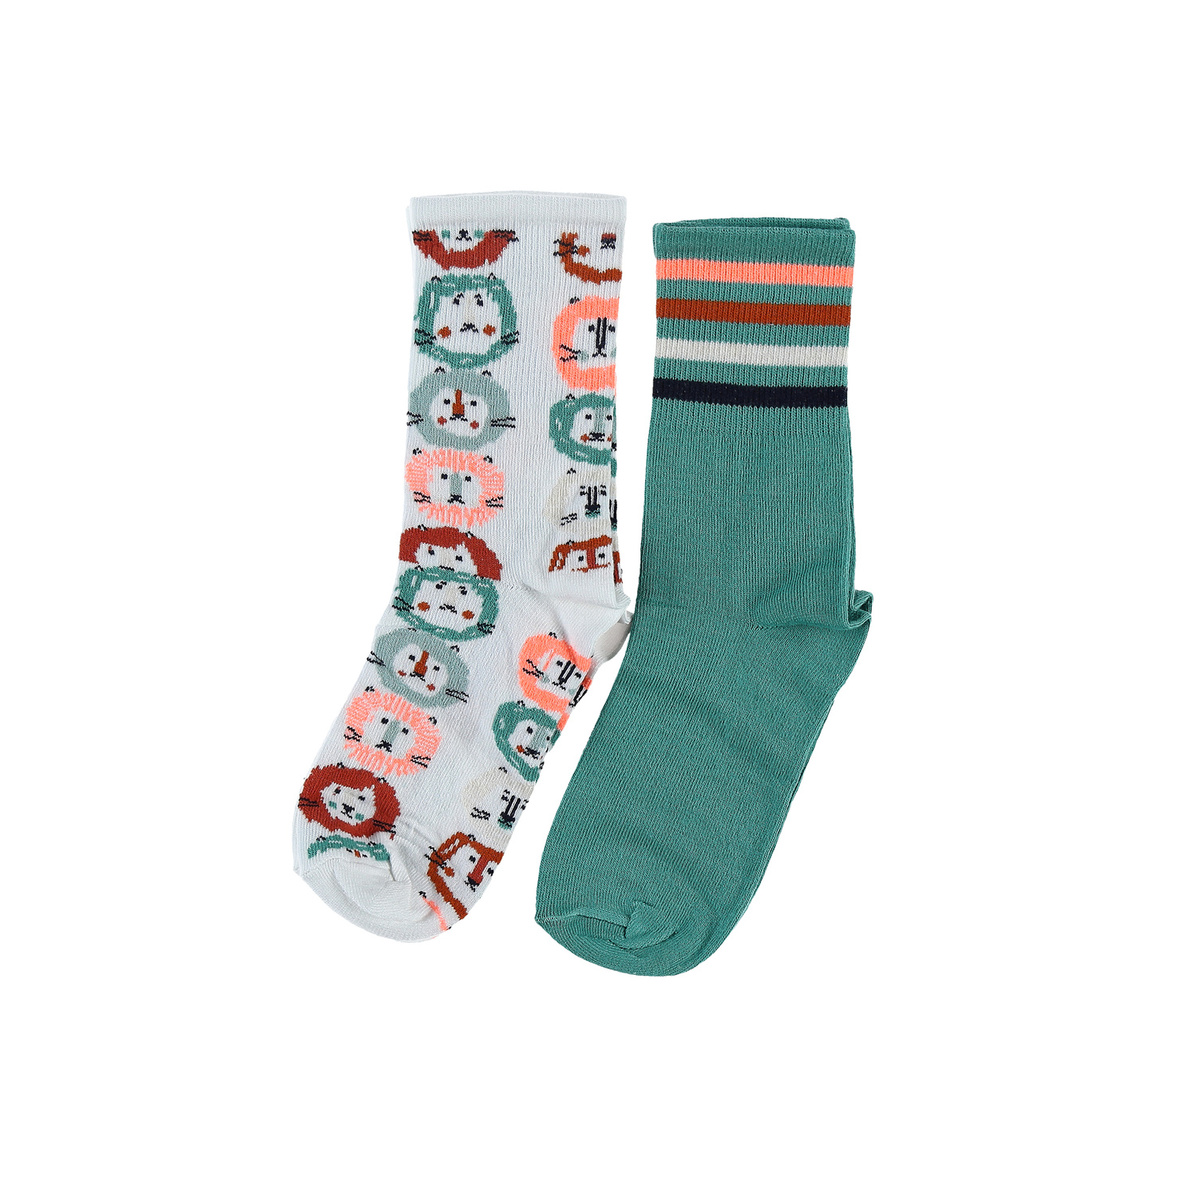 Set of 2 pairs of socks with green and lion print